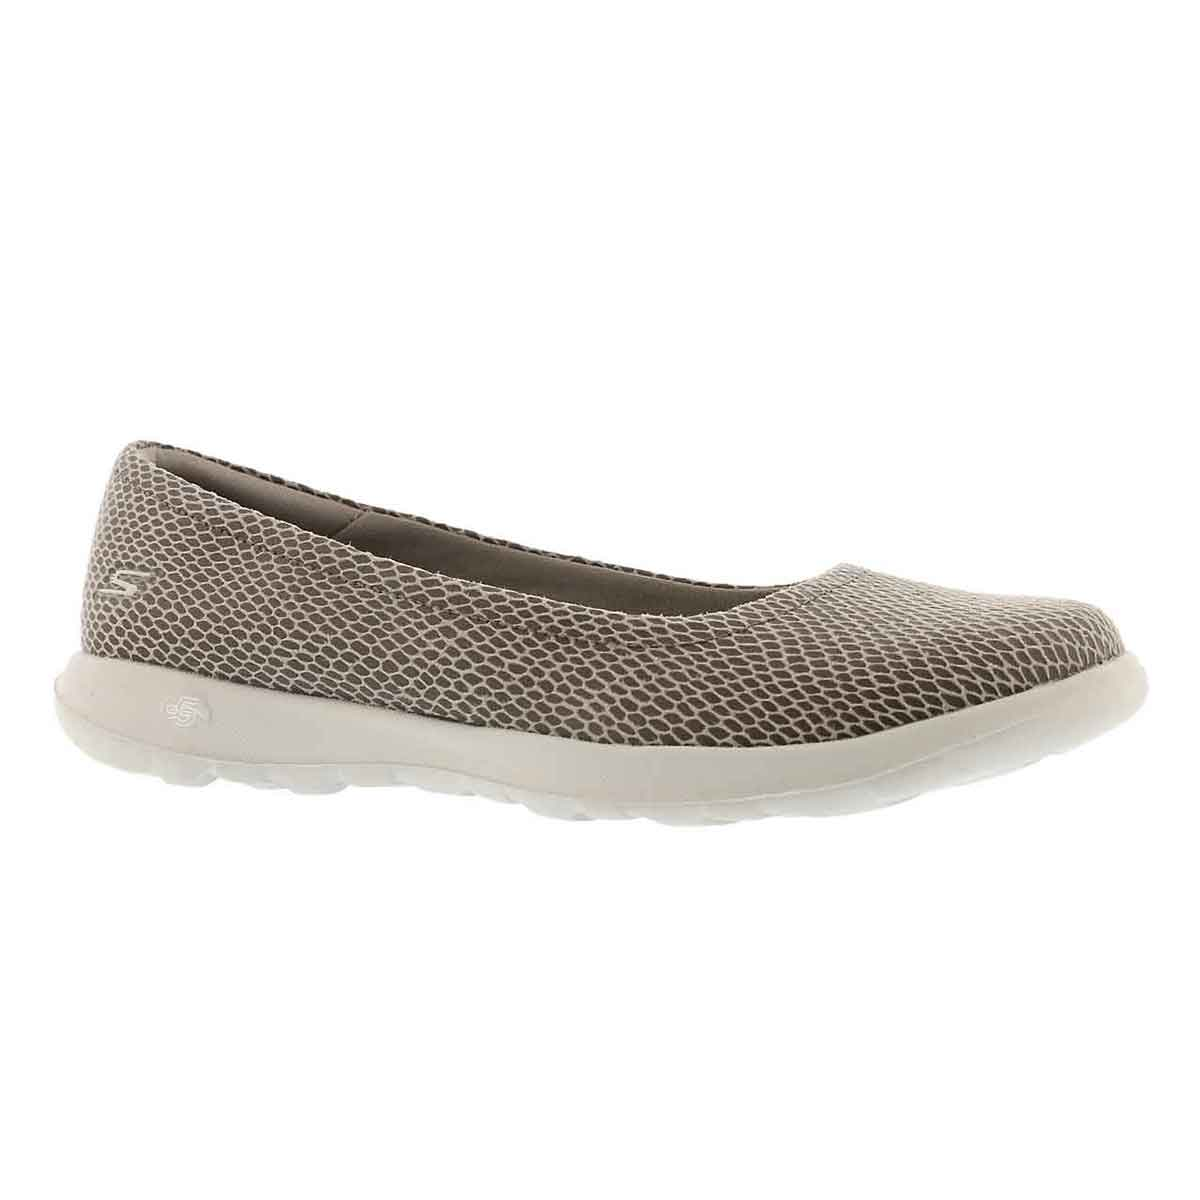 Lds GOwalk Lite Feisty  tpe snkprnt flat